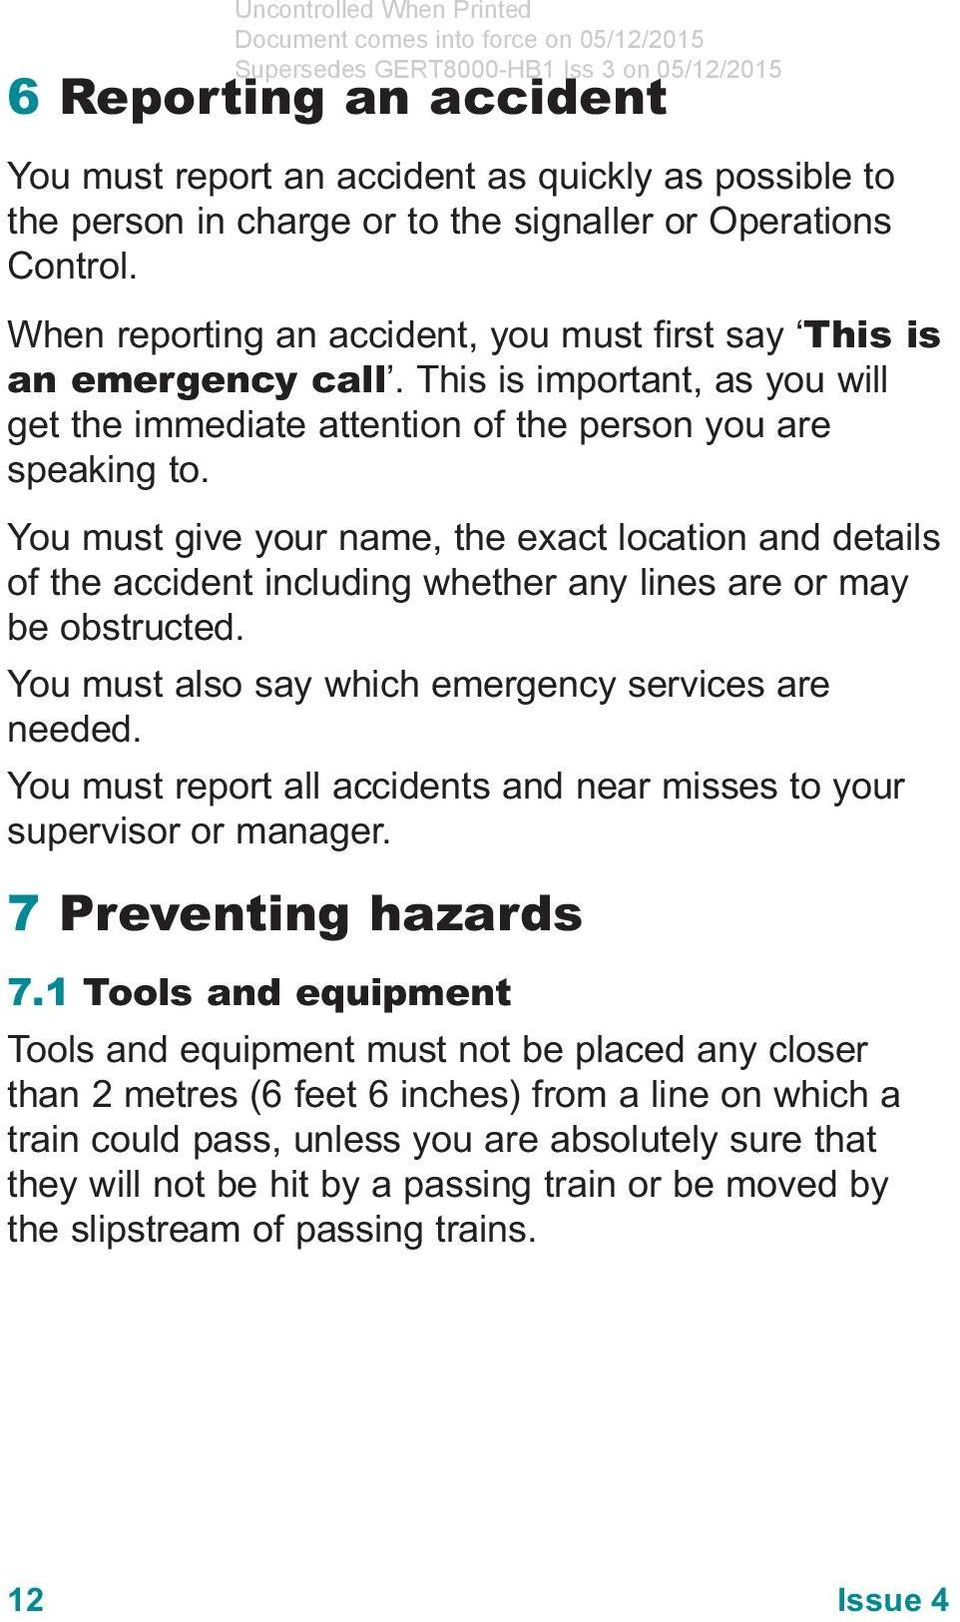 You must give your name, the exact location and details of the accident including whether any lines are or may be obstructed. You must also say which emergency services are needed.